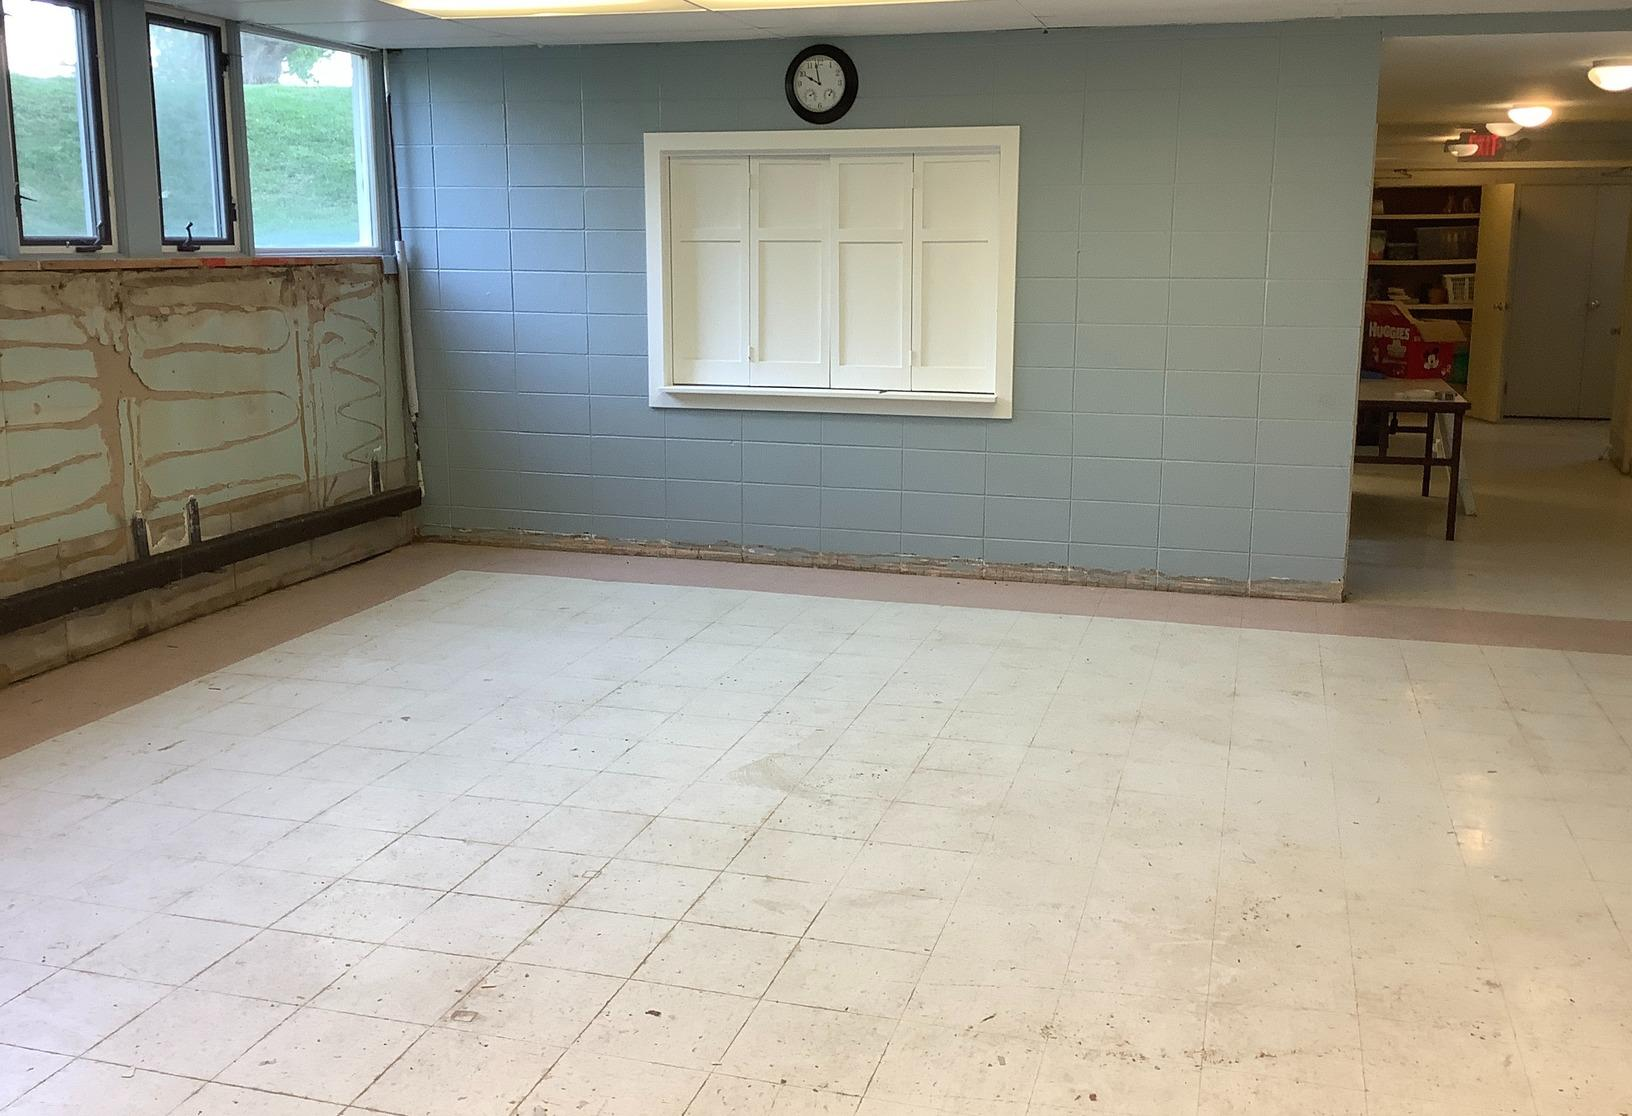 Commercial Basement Cleanout in Itasca, IL - After Photo